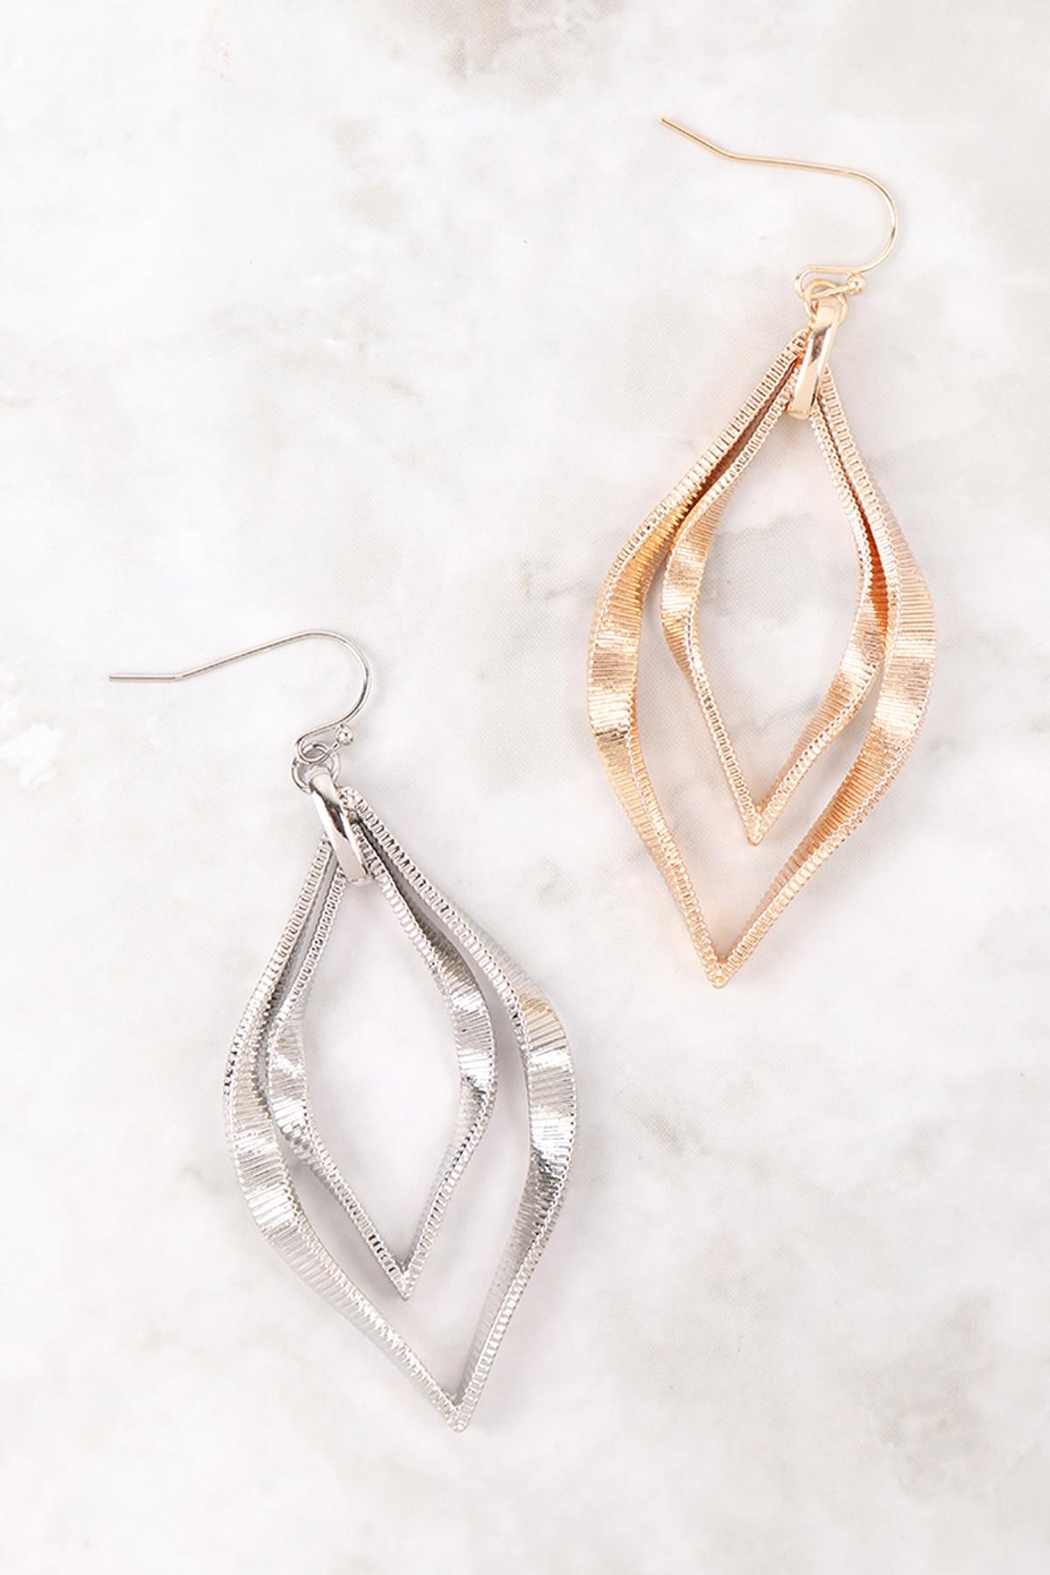 Riah Fashion Twist Textured-Layered-Marquise-Shape-Fish-Hook-Earrings - Front Full Image